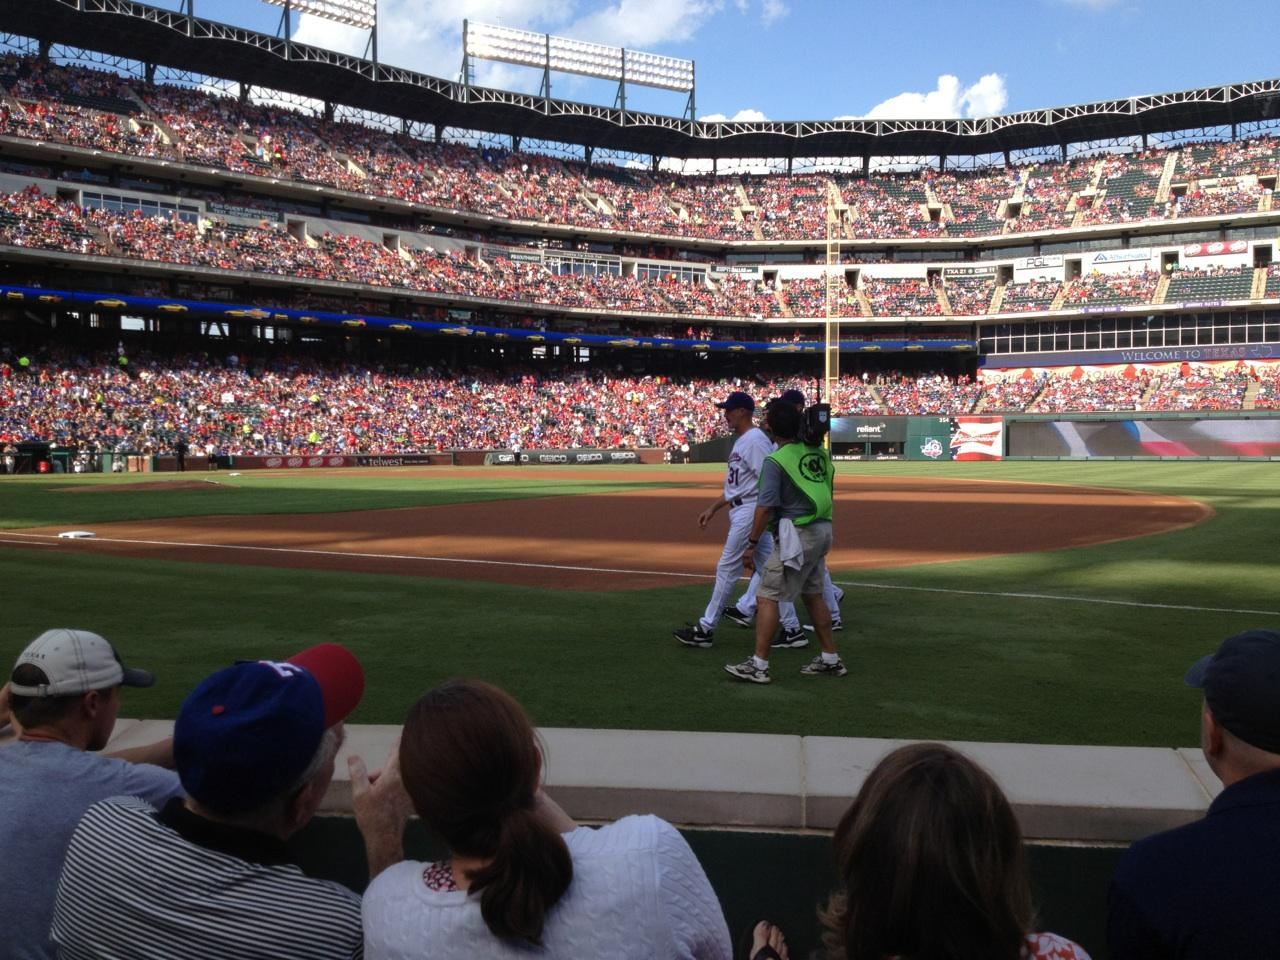 Globe Life Park in Arlington Section 36 Row 1 Seat 7